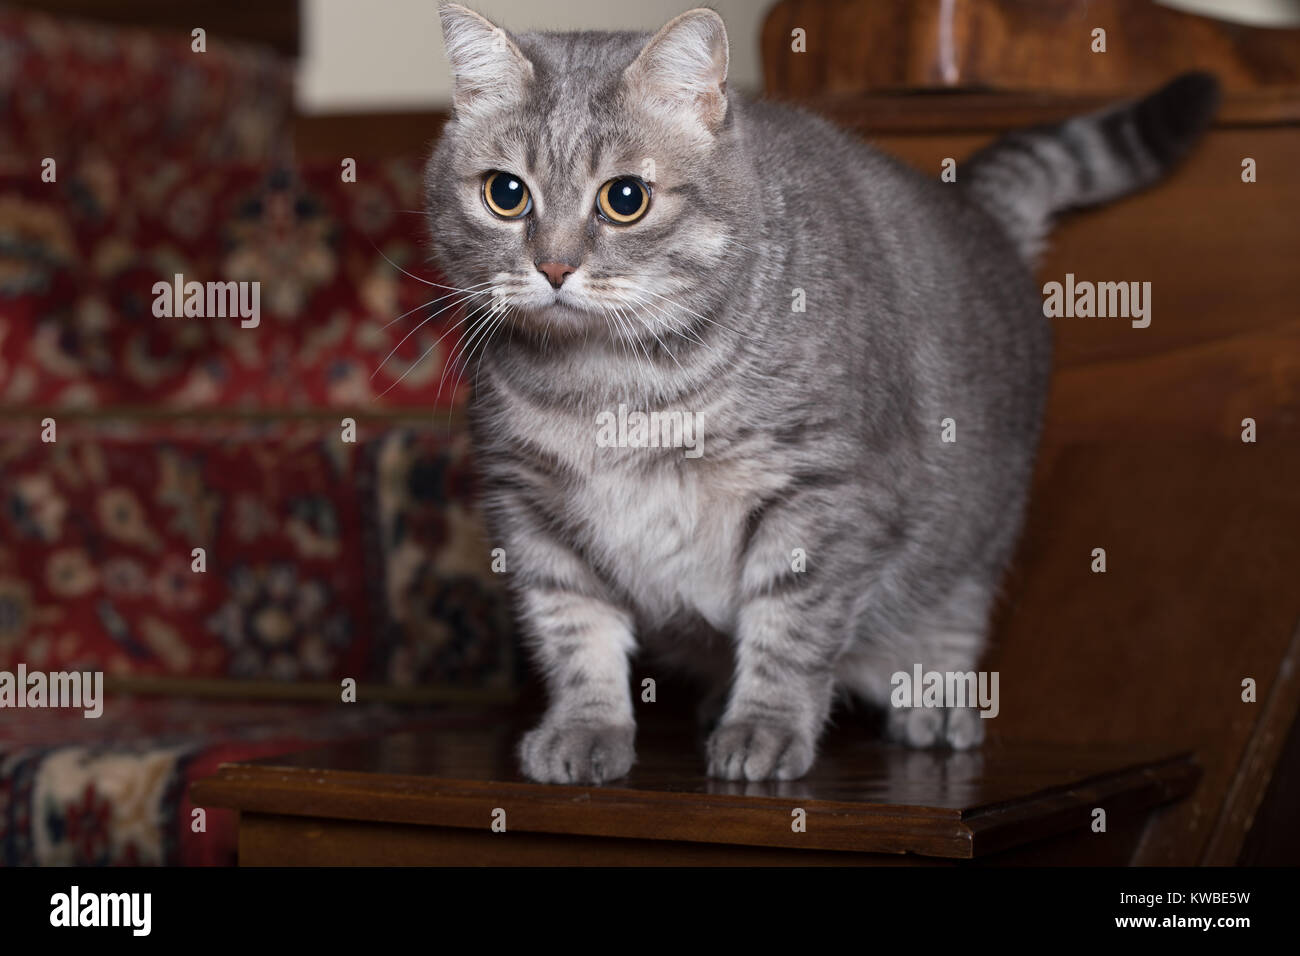 Young grey tabby looking interested in home indoor. - Stock Image